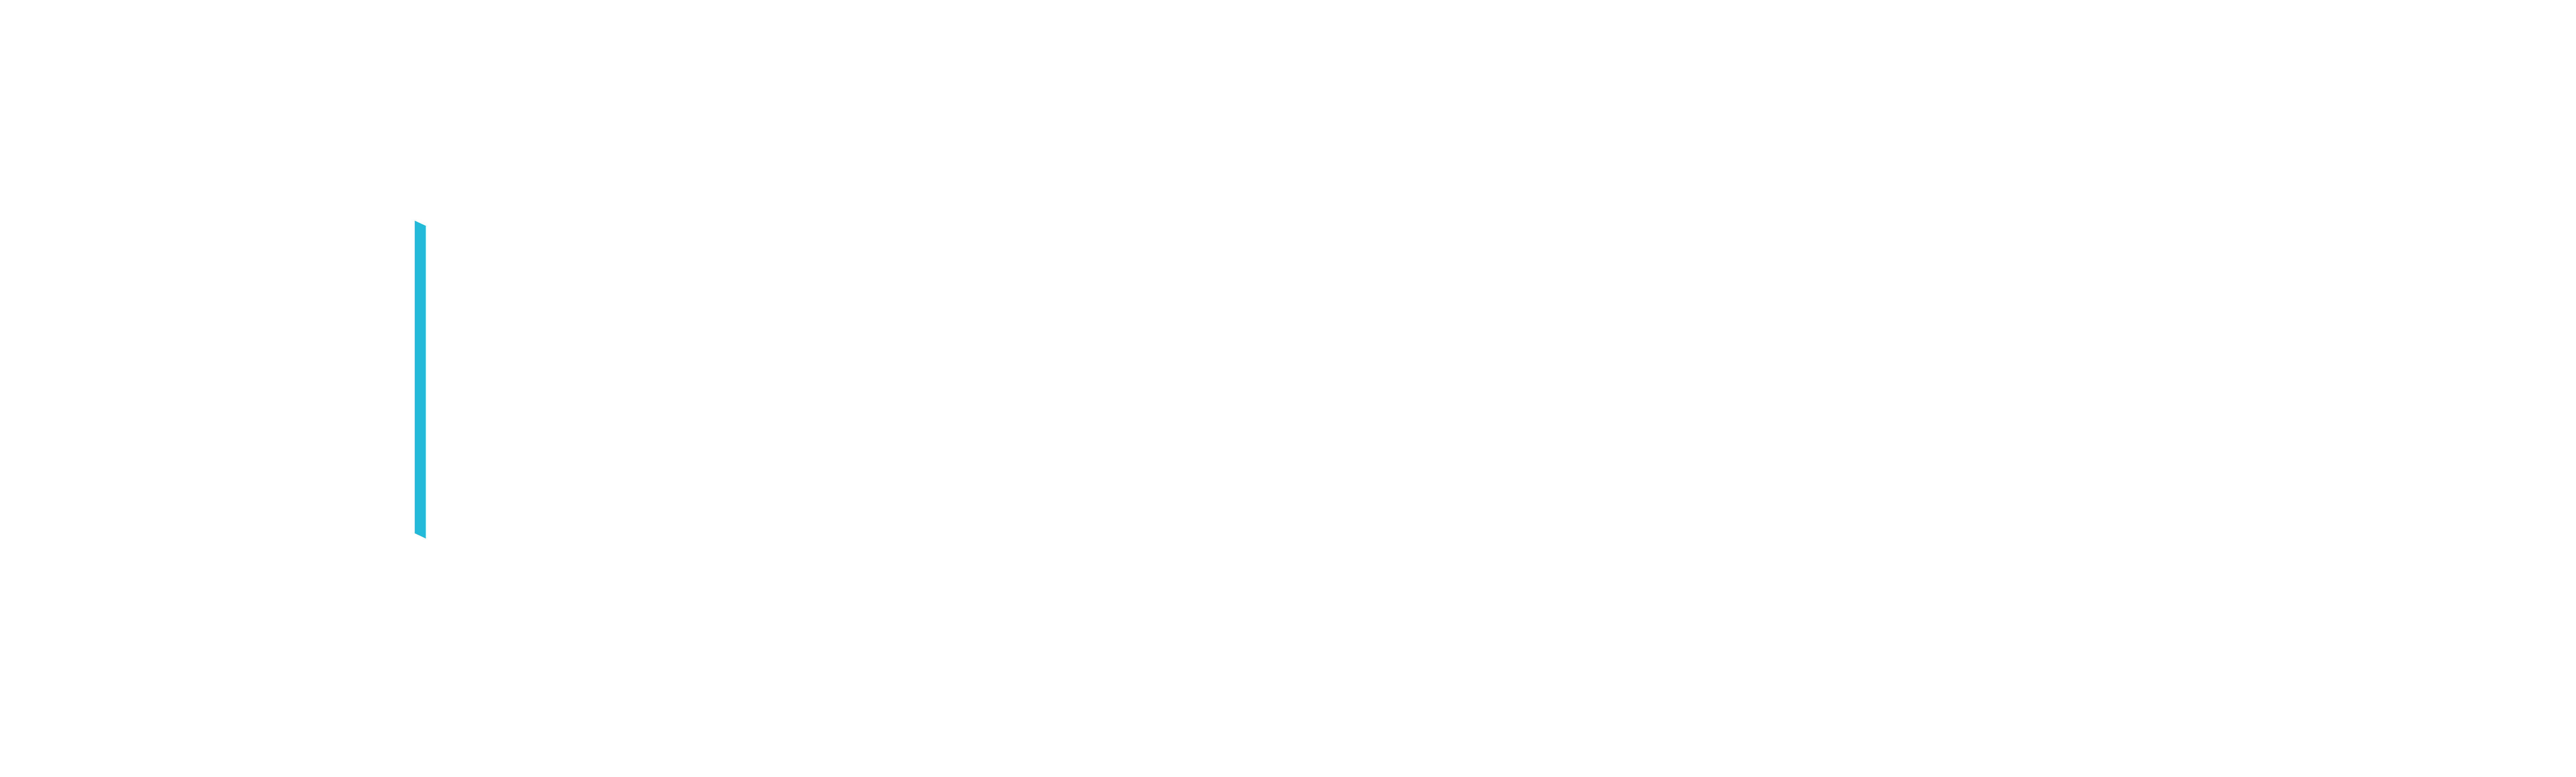 Department of Construction and Technical Works